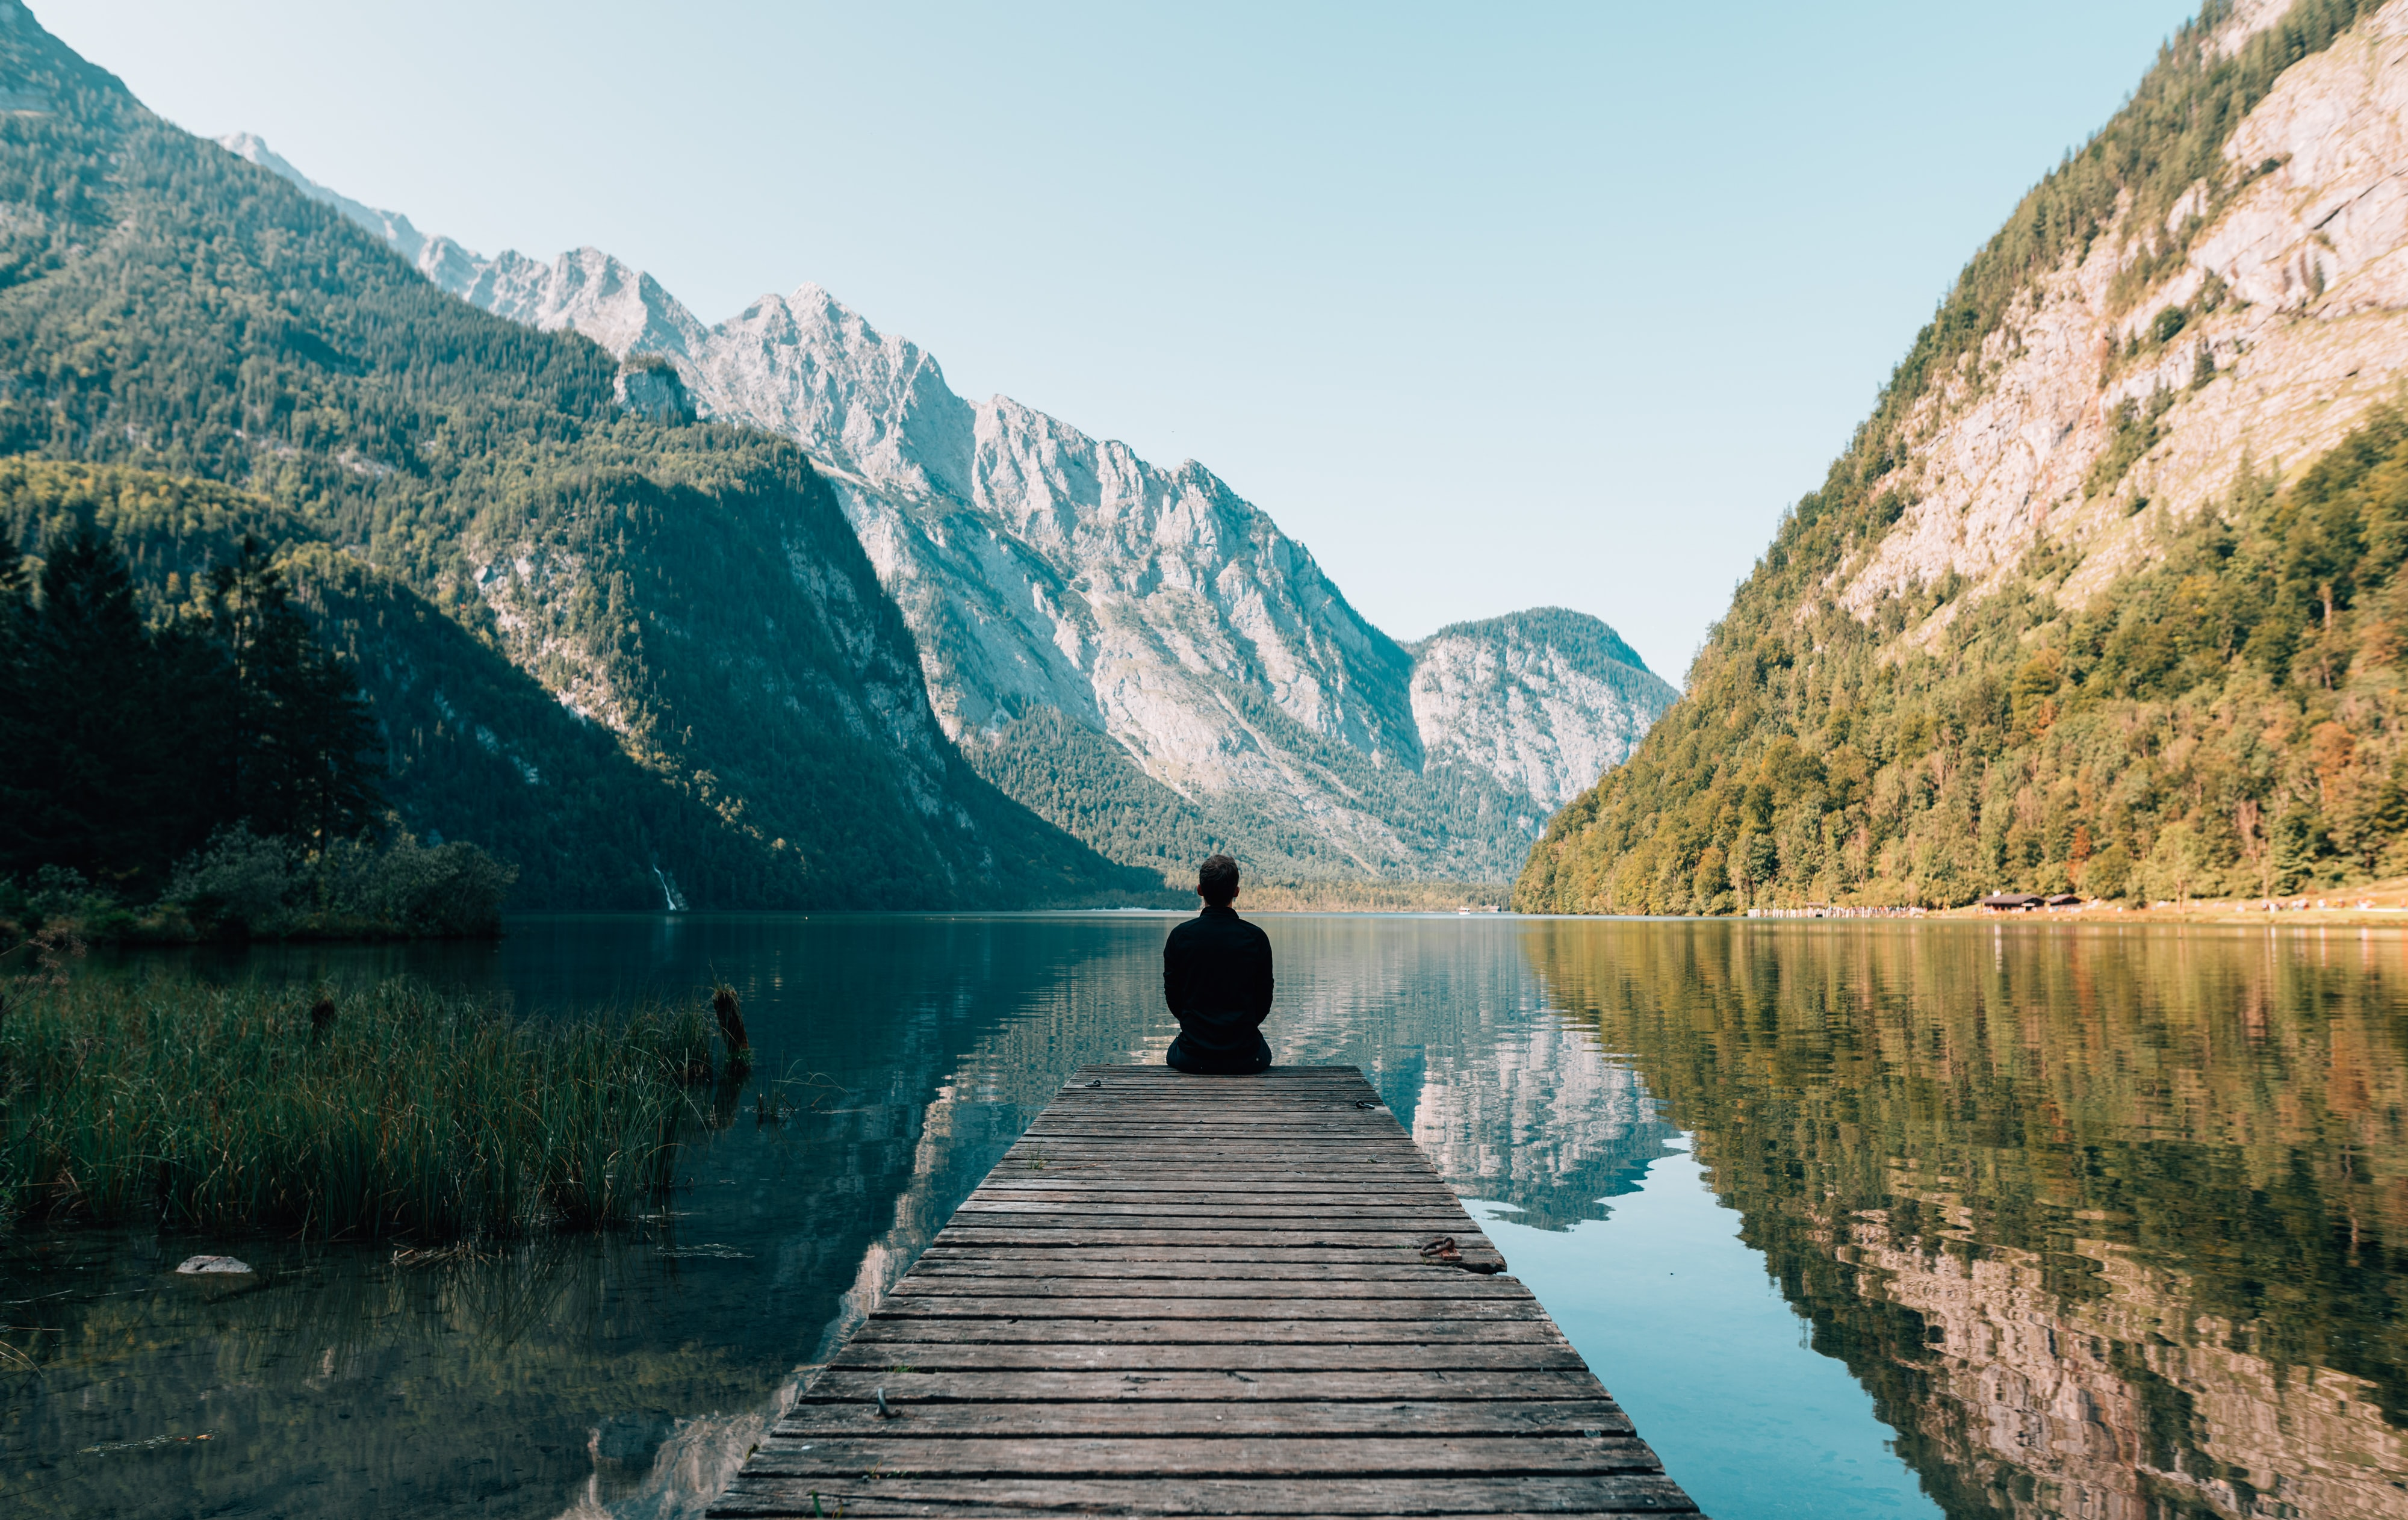 Man sitting on a dock looking at a lake